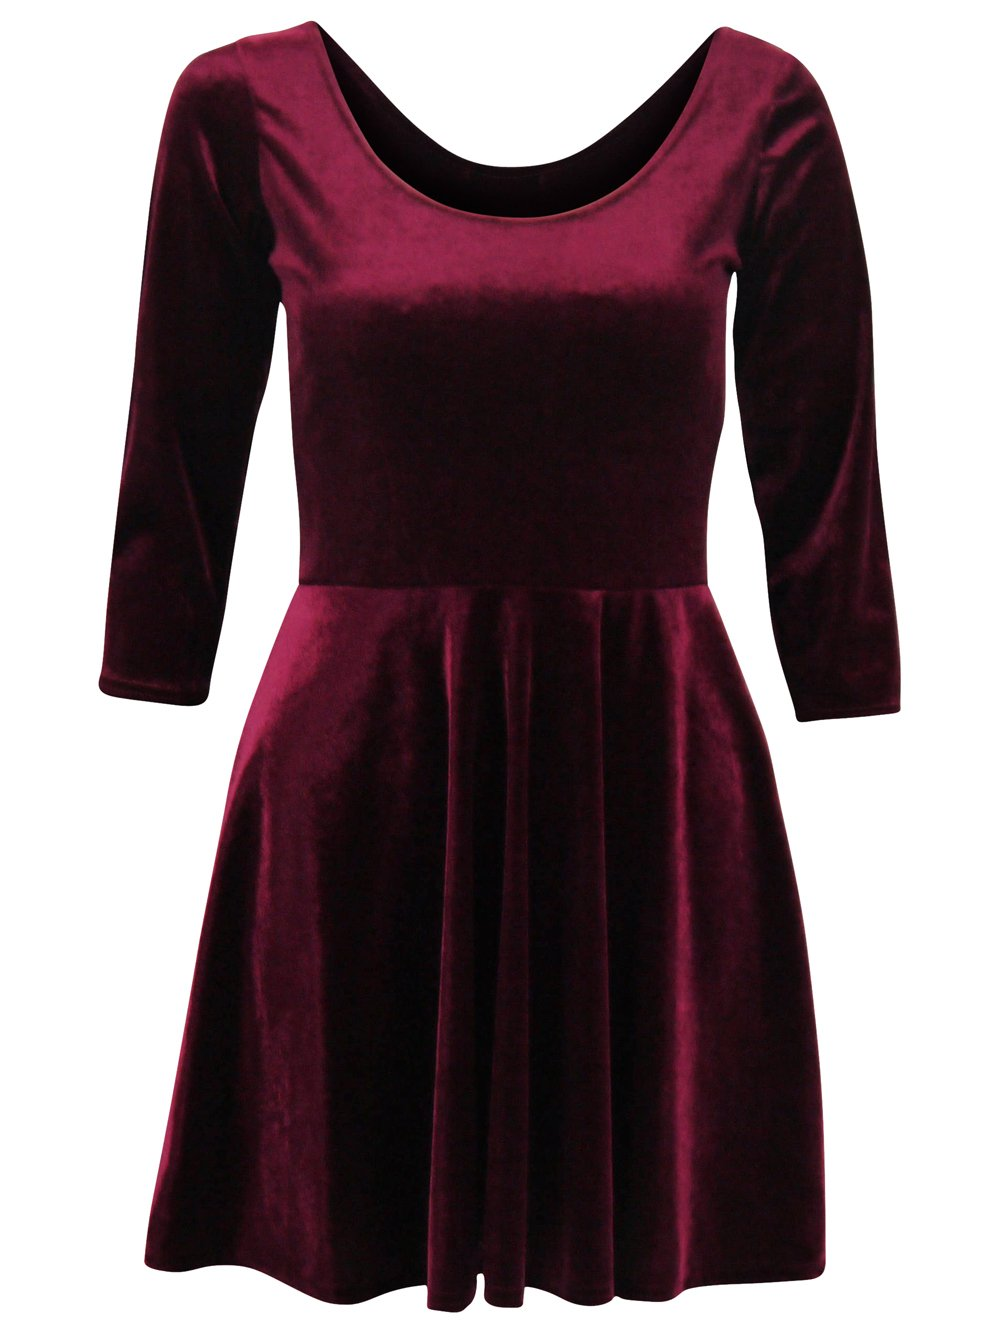 Long sleeve red velvet skater dress